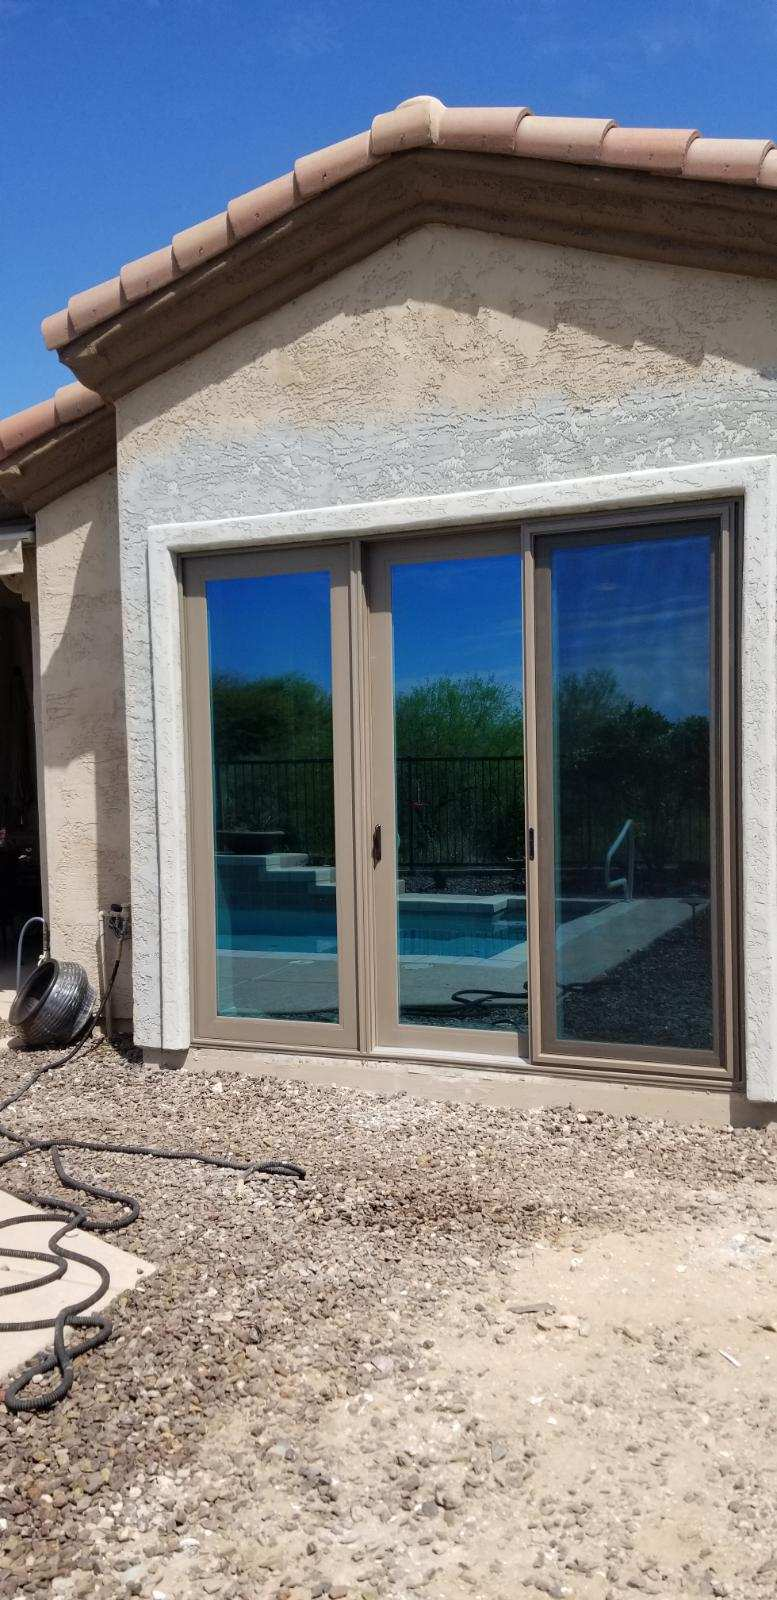 Arizona Window and Door in Scottsdale and Tucson showing back door panel slider